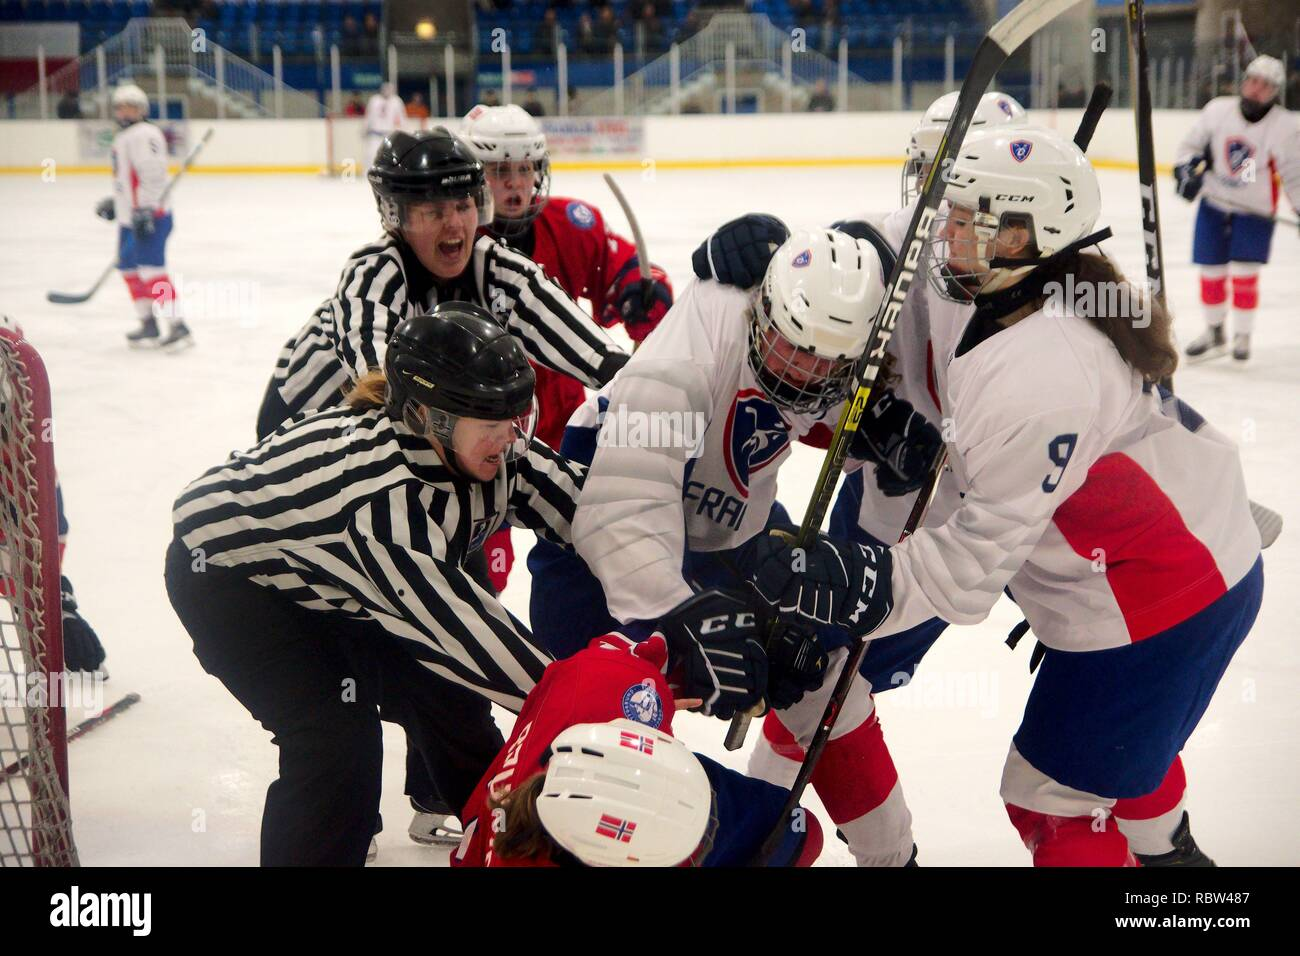 Dumfries, Scotland, 12 January 2019. Margot Rouquette, number 3, of France and Marthe Brunvold, number 11, of Norway pick up 2 minute penalties for roughing during their match against Norway in the 2019 Ice Hockey U18 Women's World Championship, Division 1, Group B, at Dumfries Ice Bowl. Credit: Colin Edwards/Alamy Live News. - Stock Image